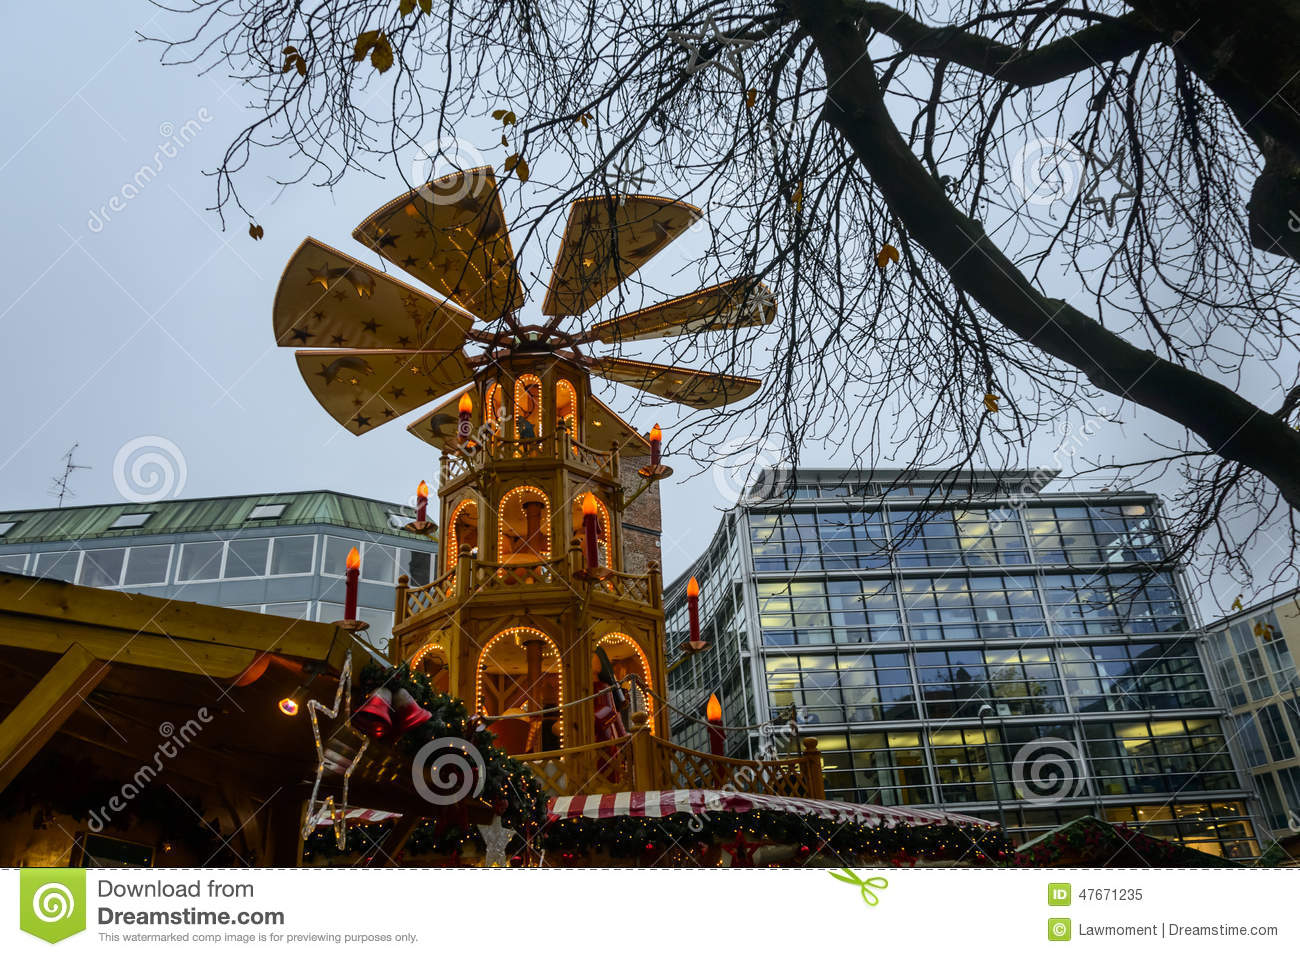 The Rotating Tower At The Rindermarkt Christmas Market In Munich.